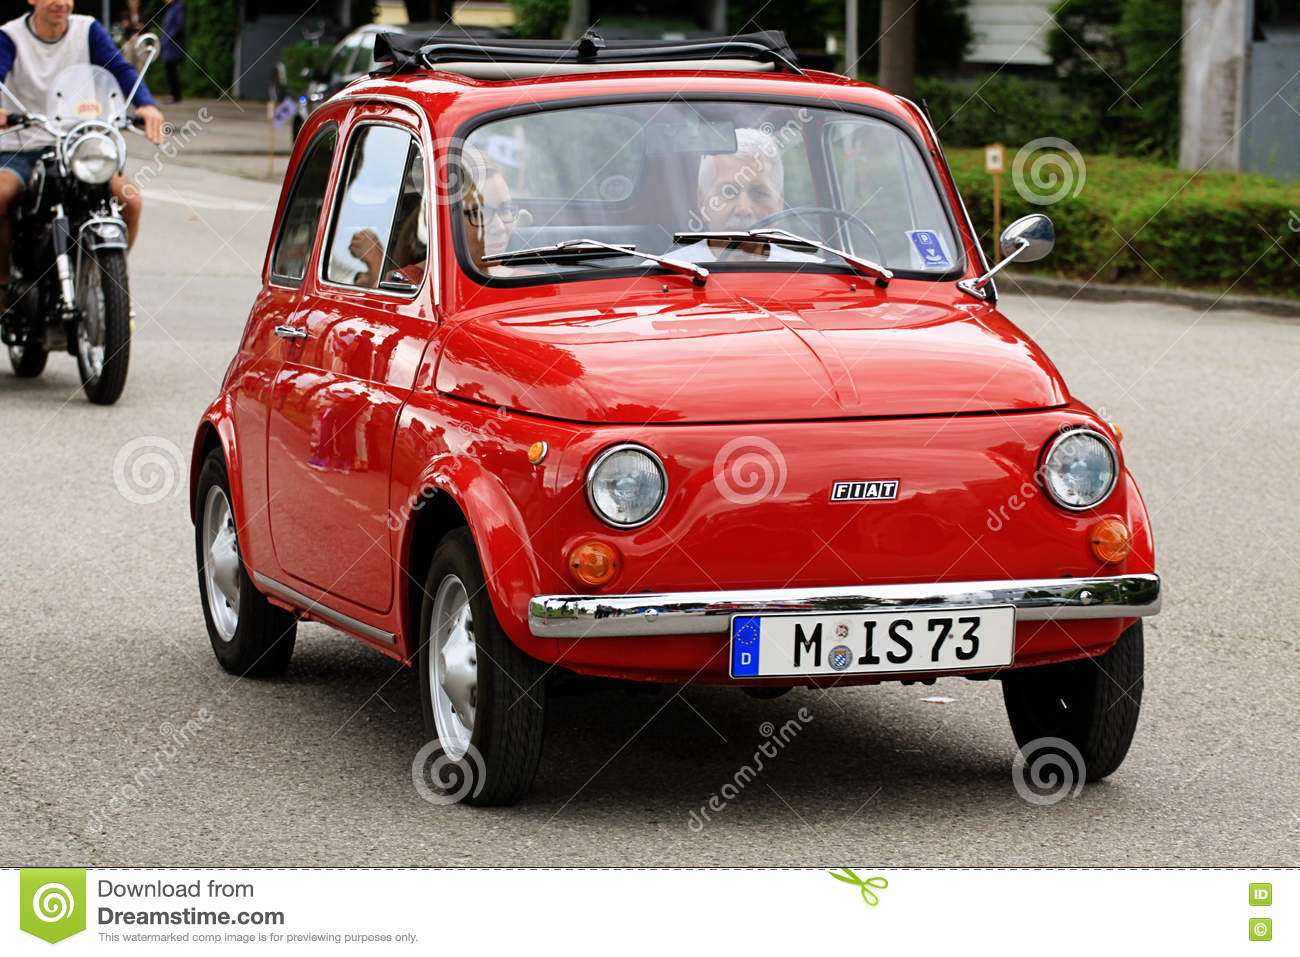 Iconic Italian Fiat 500 Mini Car Vintage Editorial Photography